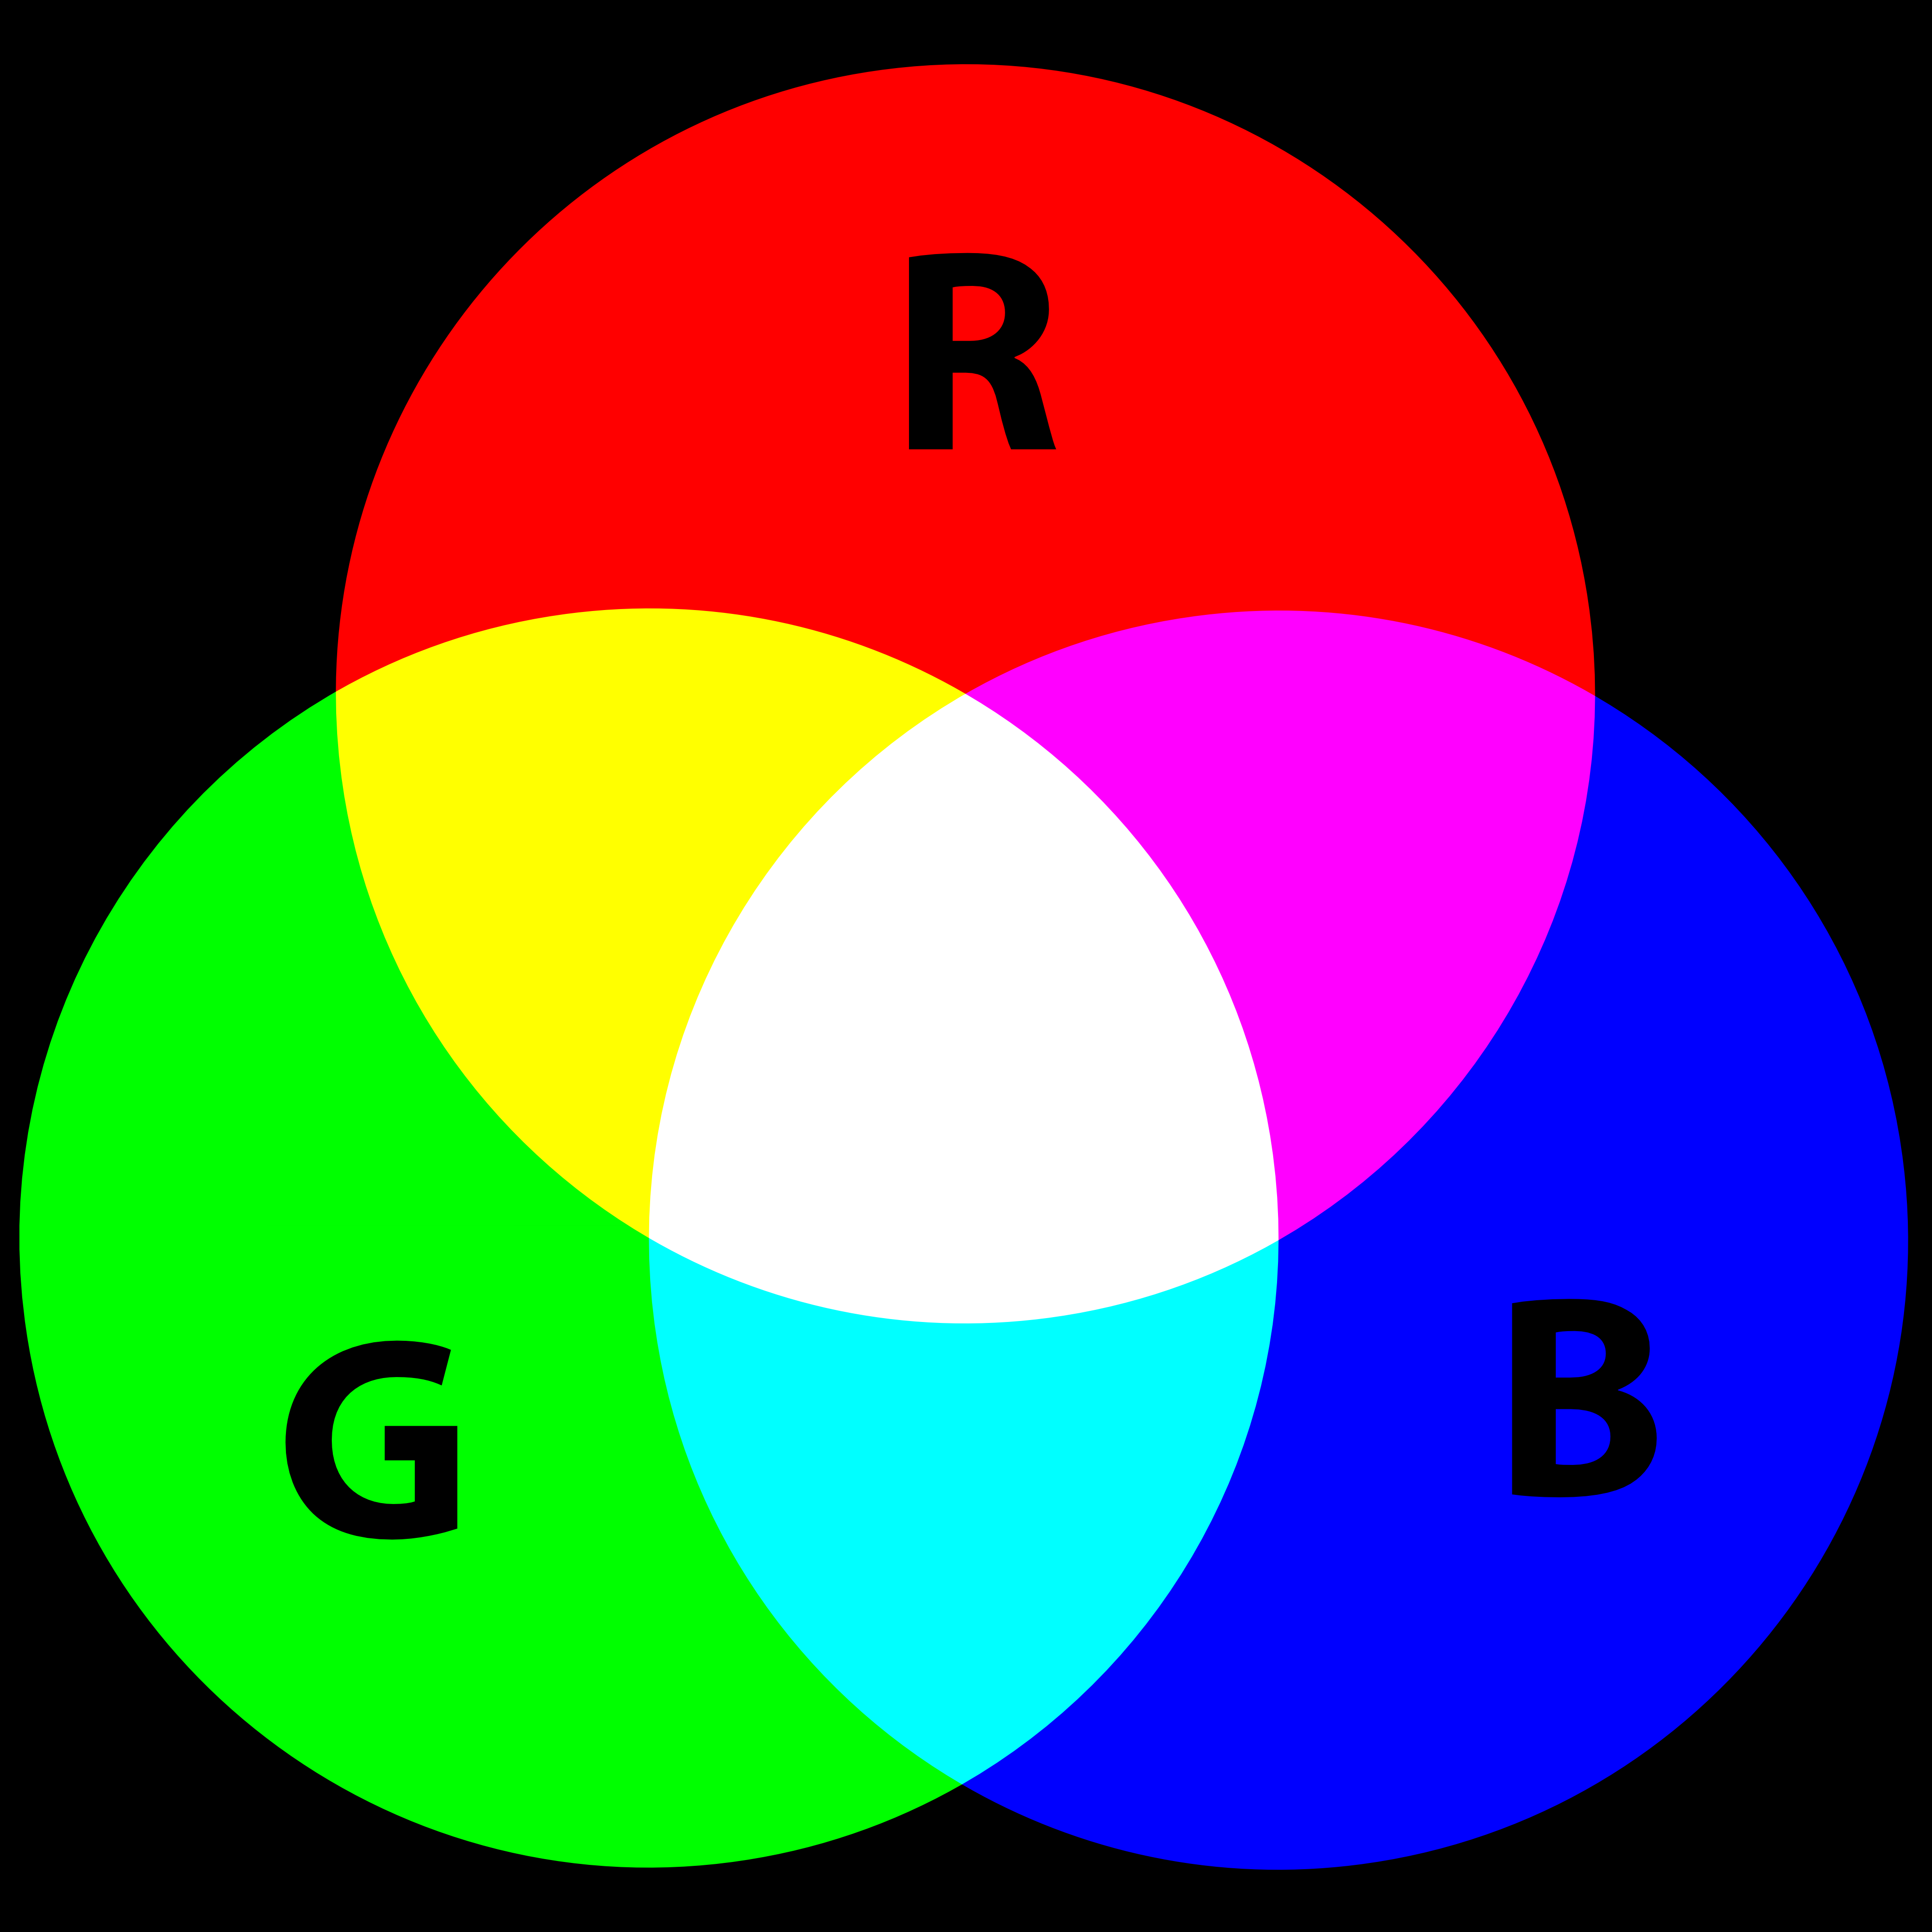 RGB to YCbCr conversion